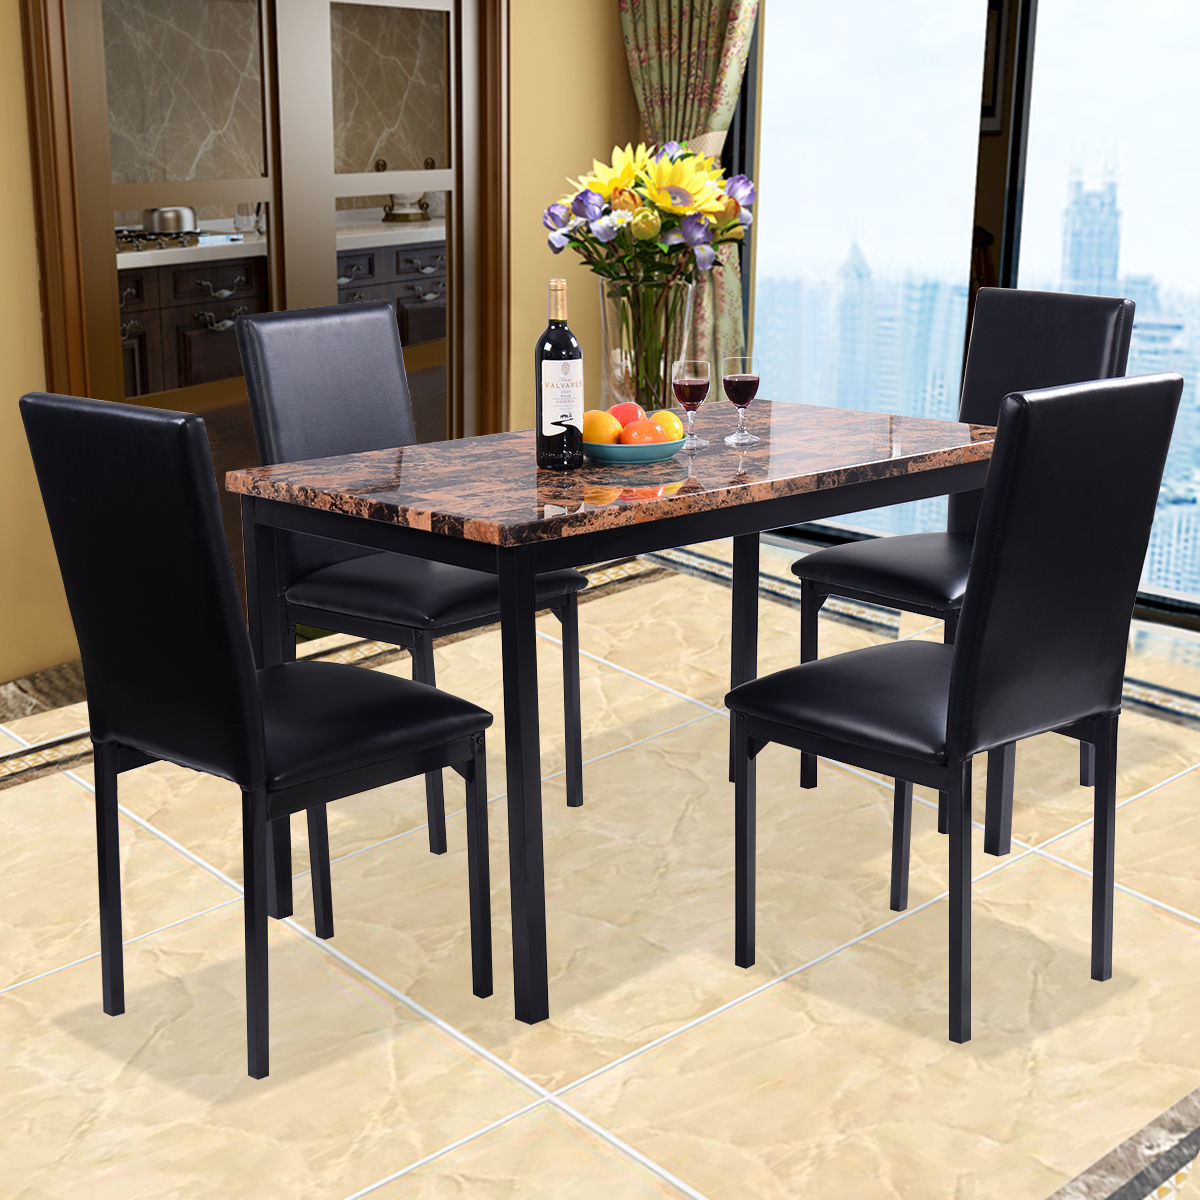 costway 5 pc dining set faux marble table and 4 chairs kitchen dining room furniture - Table And Chair Sets Kitchen